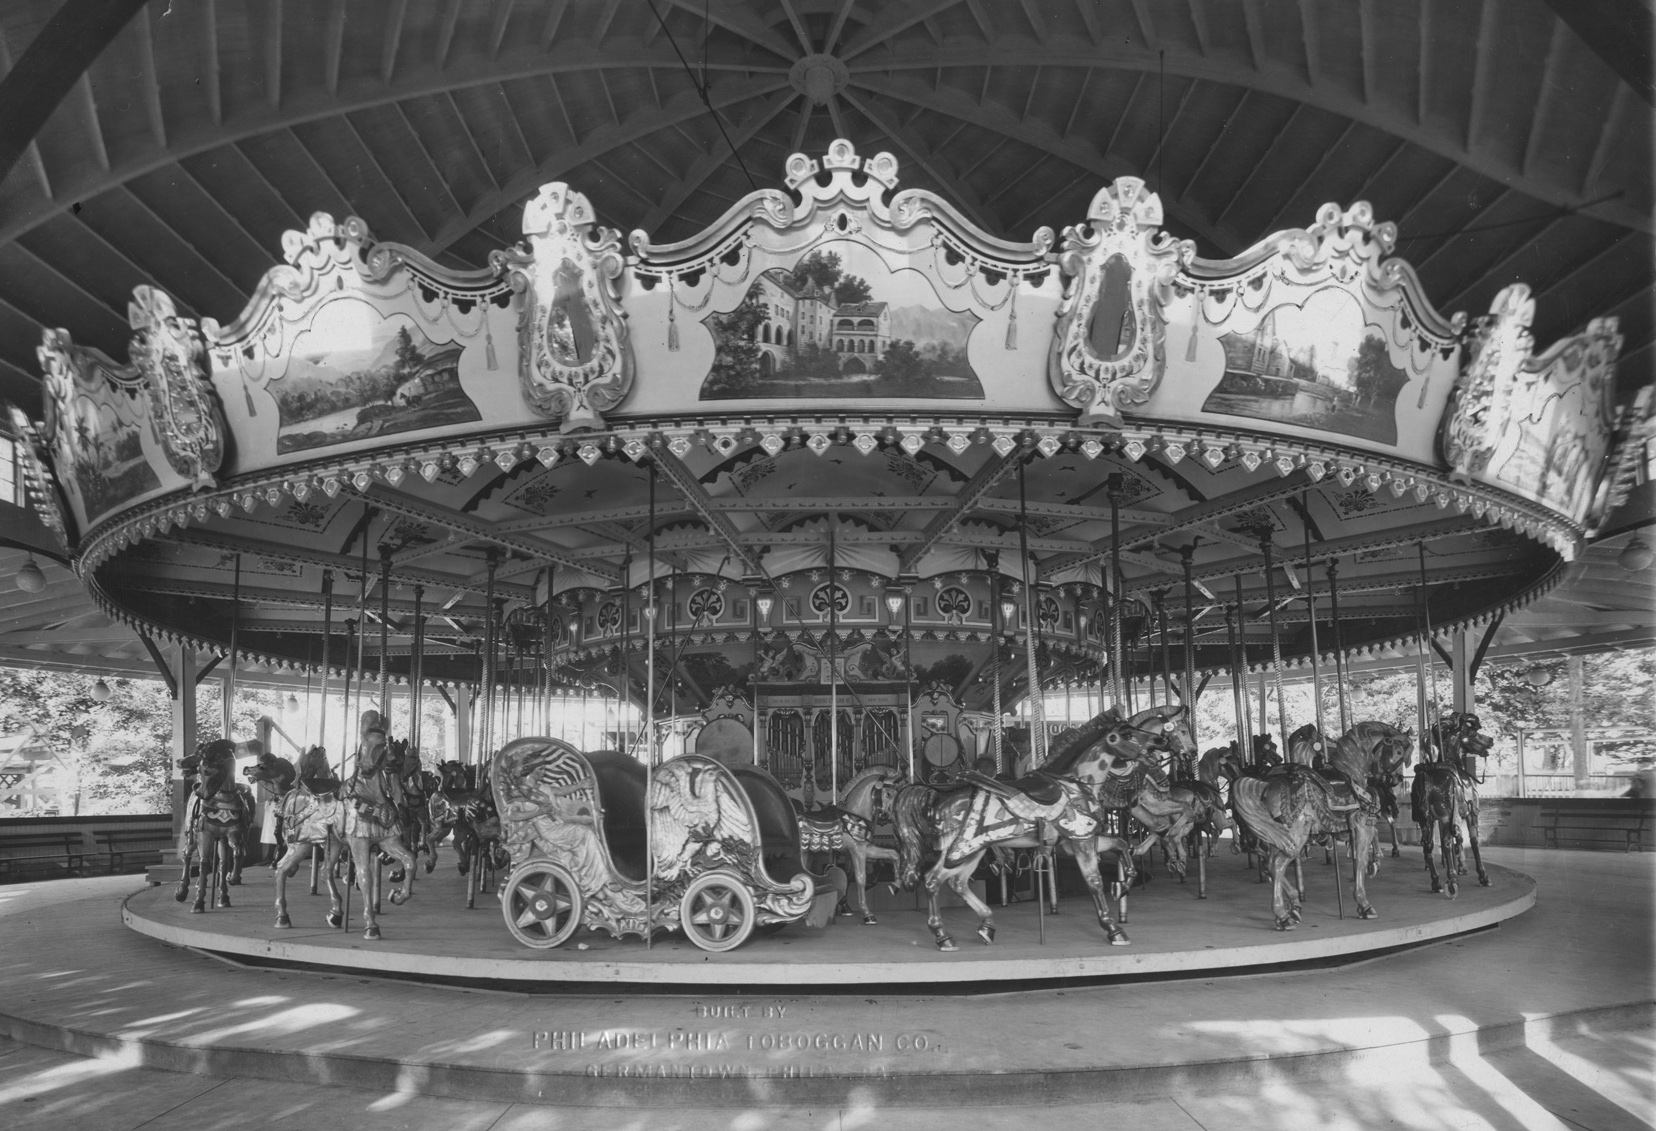 An original wooden carousel crafted by the Philadelphia Toboggan Company.